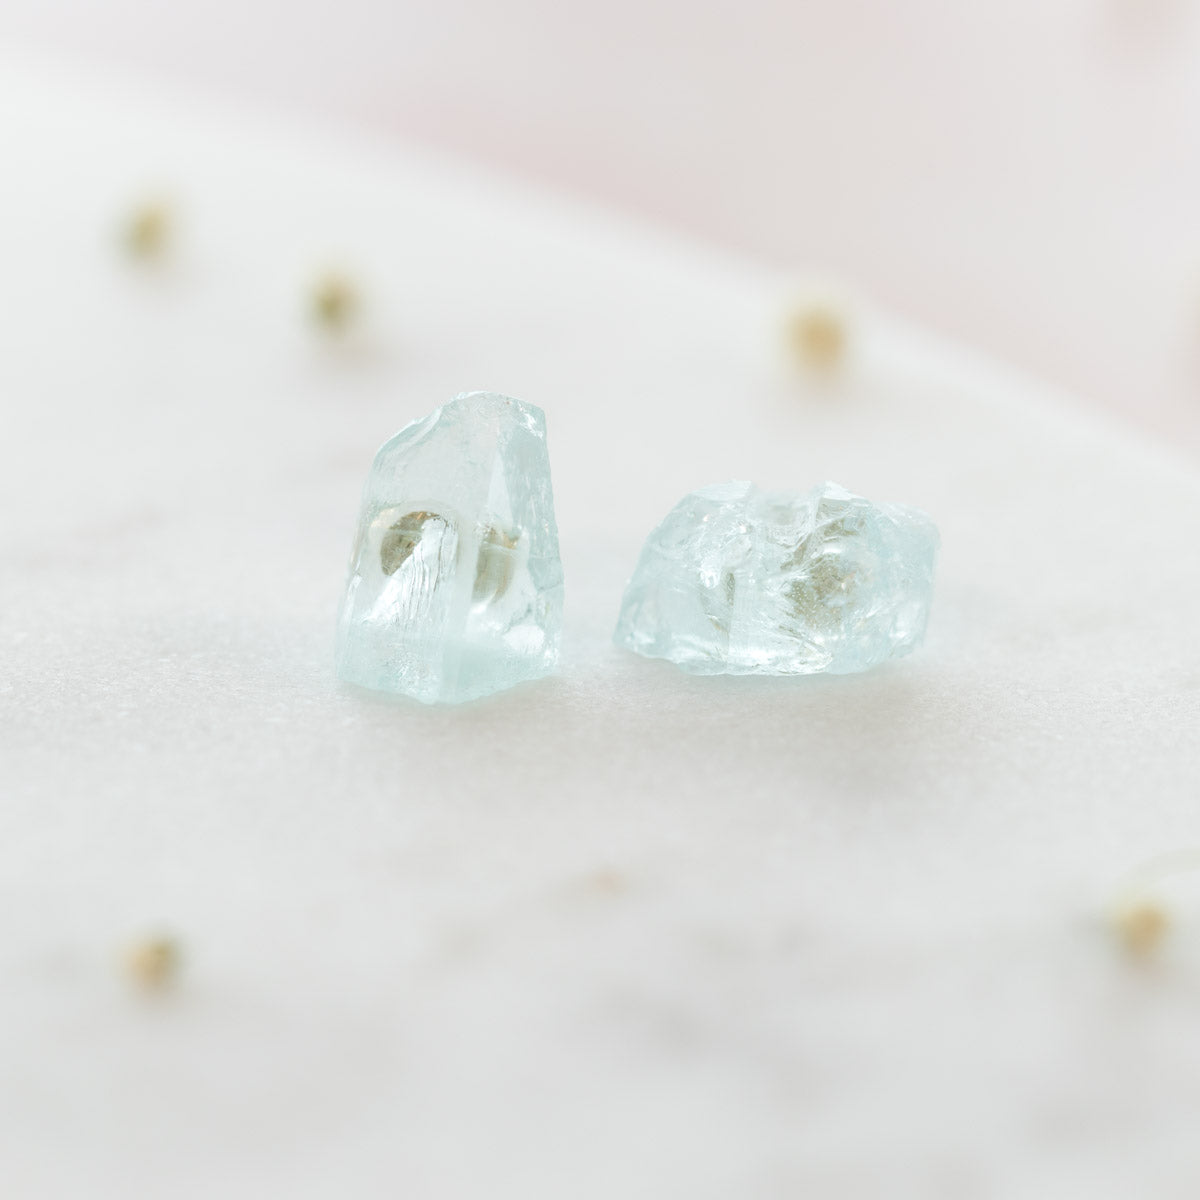 Aquamarine Earrings, Raw Aquamarine Earrings, Gold Aquamarine Earrings, Natural Aquamarine Earrings, Aquamarine Stud Earrings, Gemstone Earrings, Liz.Beth Jewelry Co.